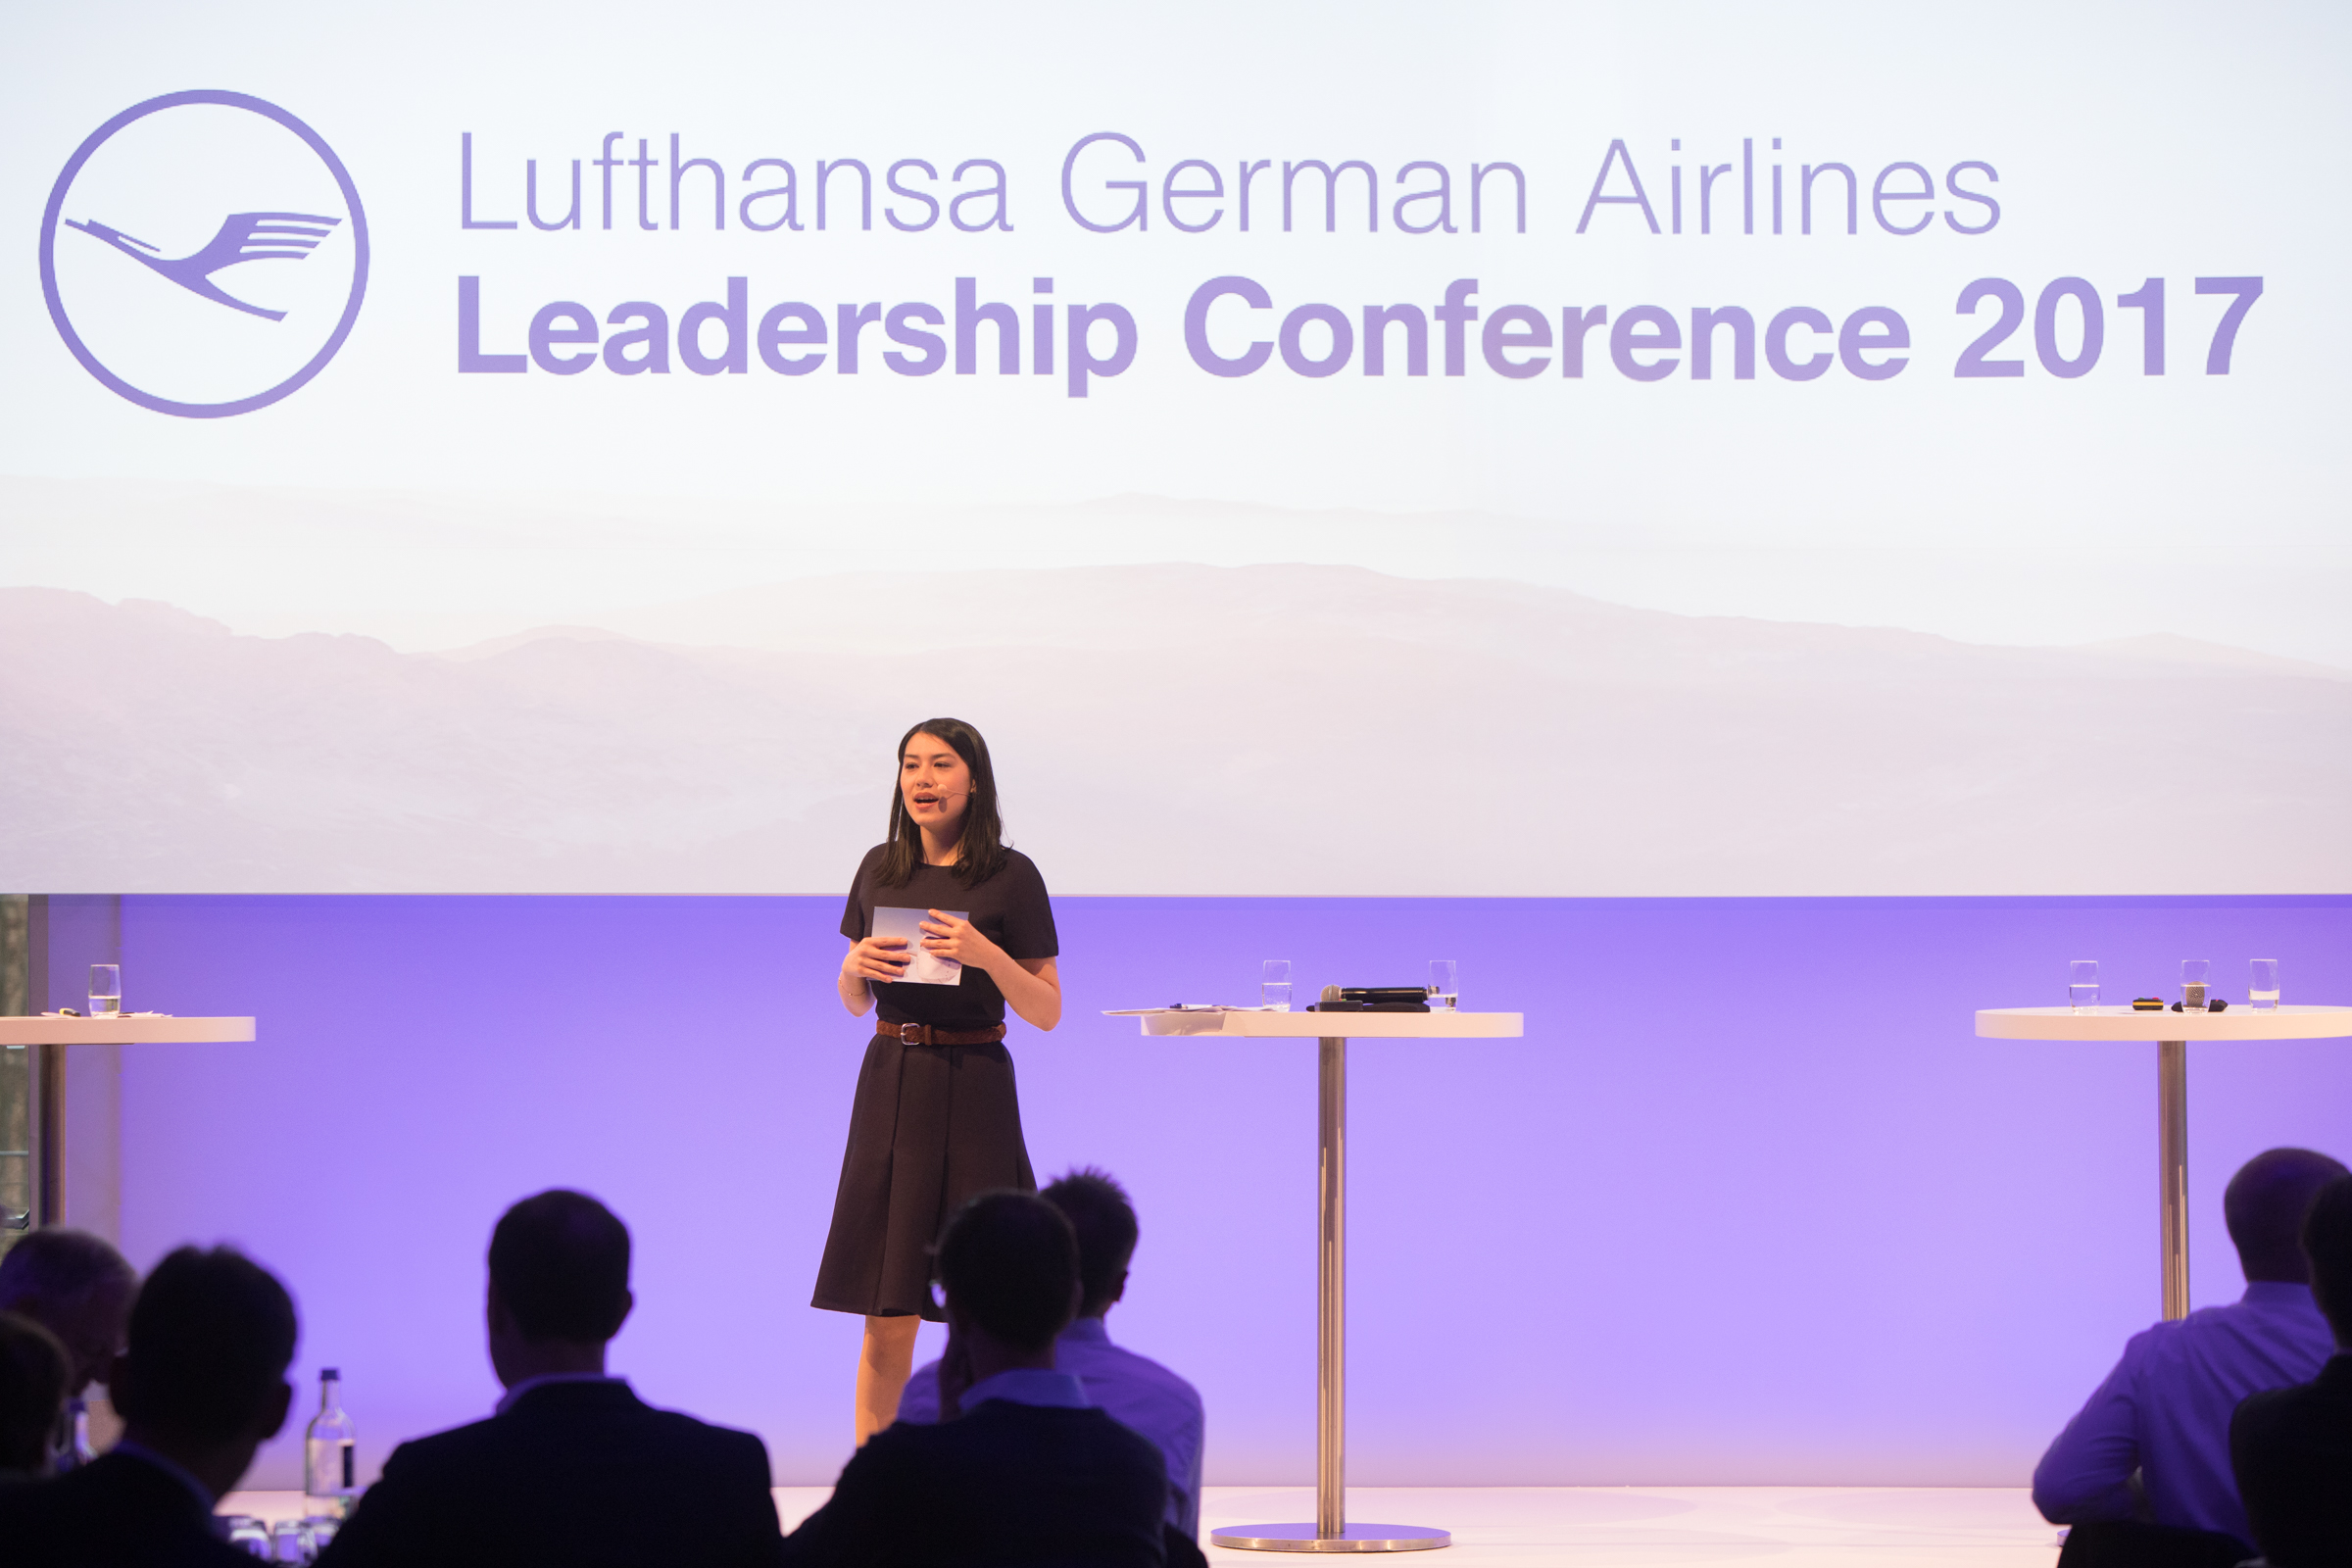 Hosting the Lufthansa Leadership Conference in Frankfurt 2017. Photo: Patrick Kuschfeld